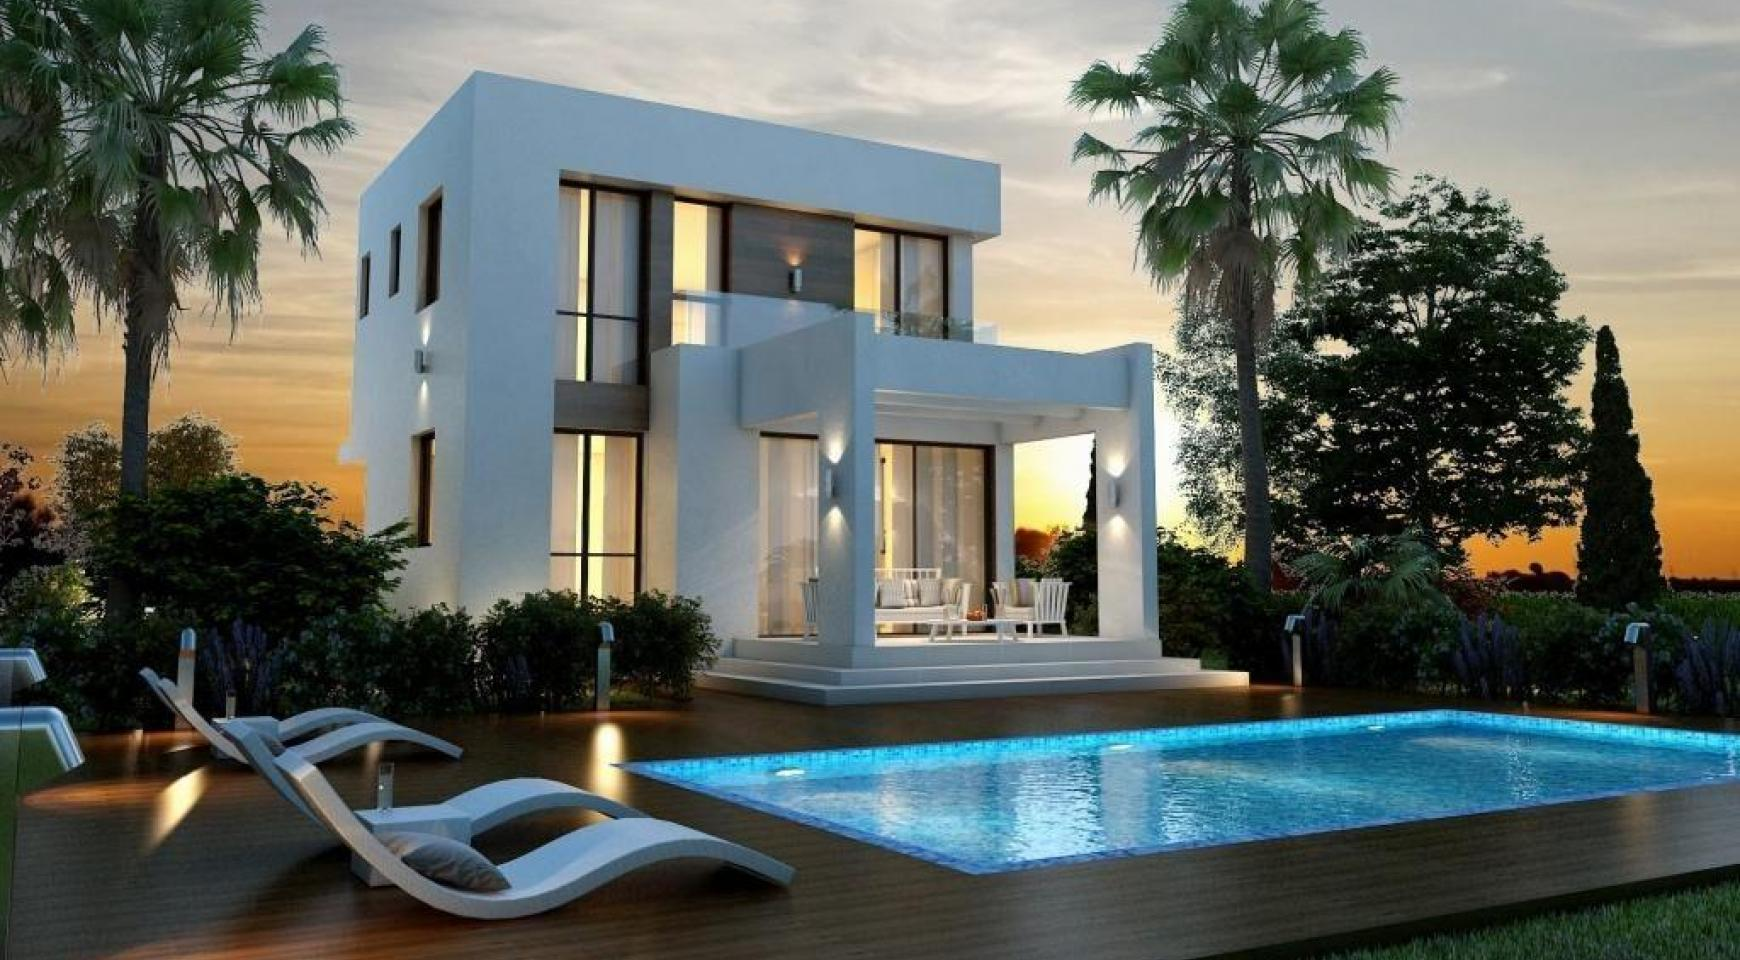 Modern 3 Bedroom Villa in a Complex near the Beach - 1